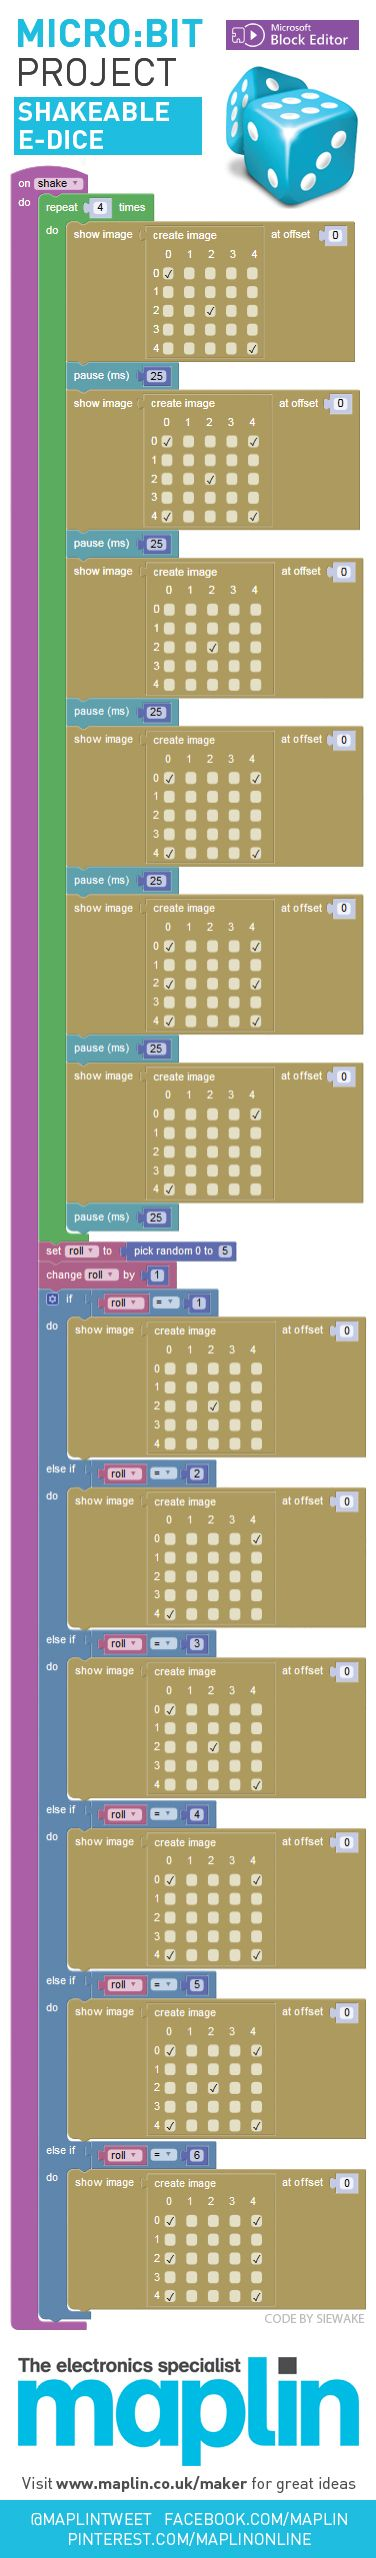 Shakeable digital dice program for Micro:Bit using Microsoft's Block Editor #bbc #makeitdigital #maplin #coding #dice #fun #games #programming #code #ict #computerscience #microbit #micro #bit #blockprogramming #juniorscience #computers #computing #program